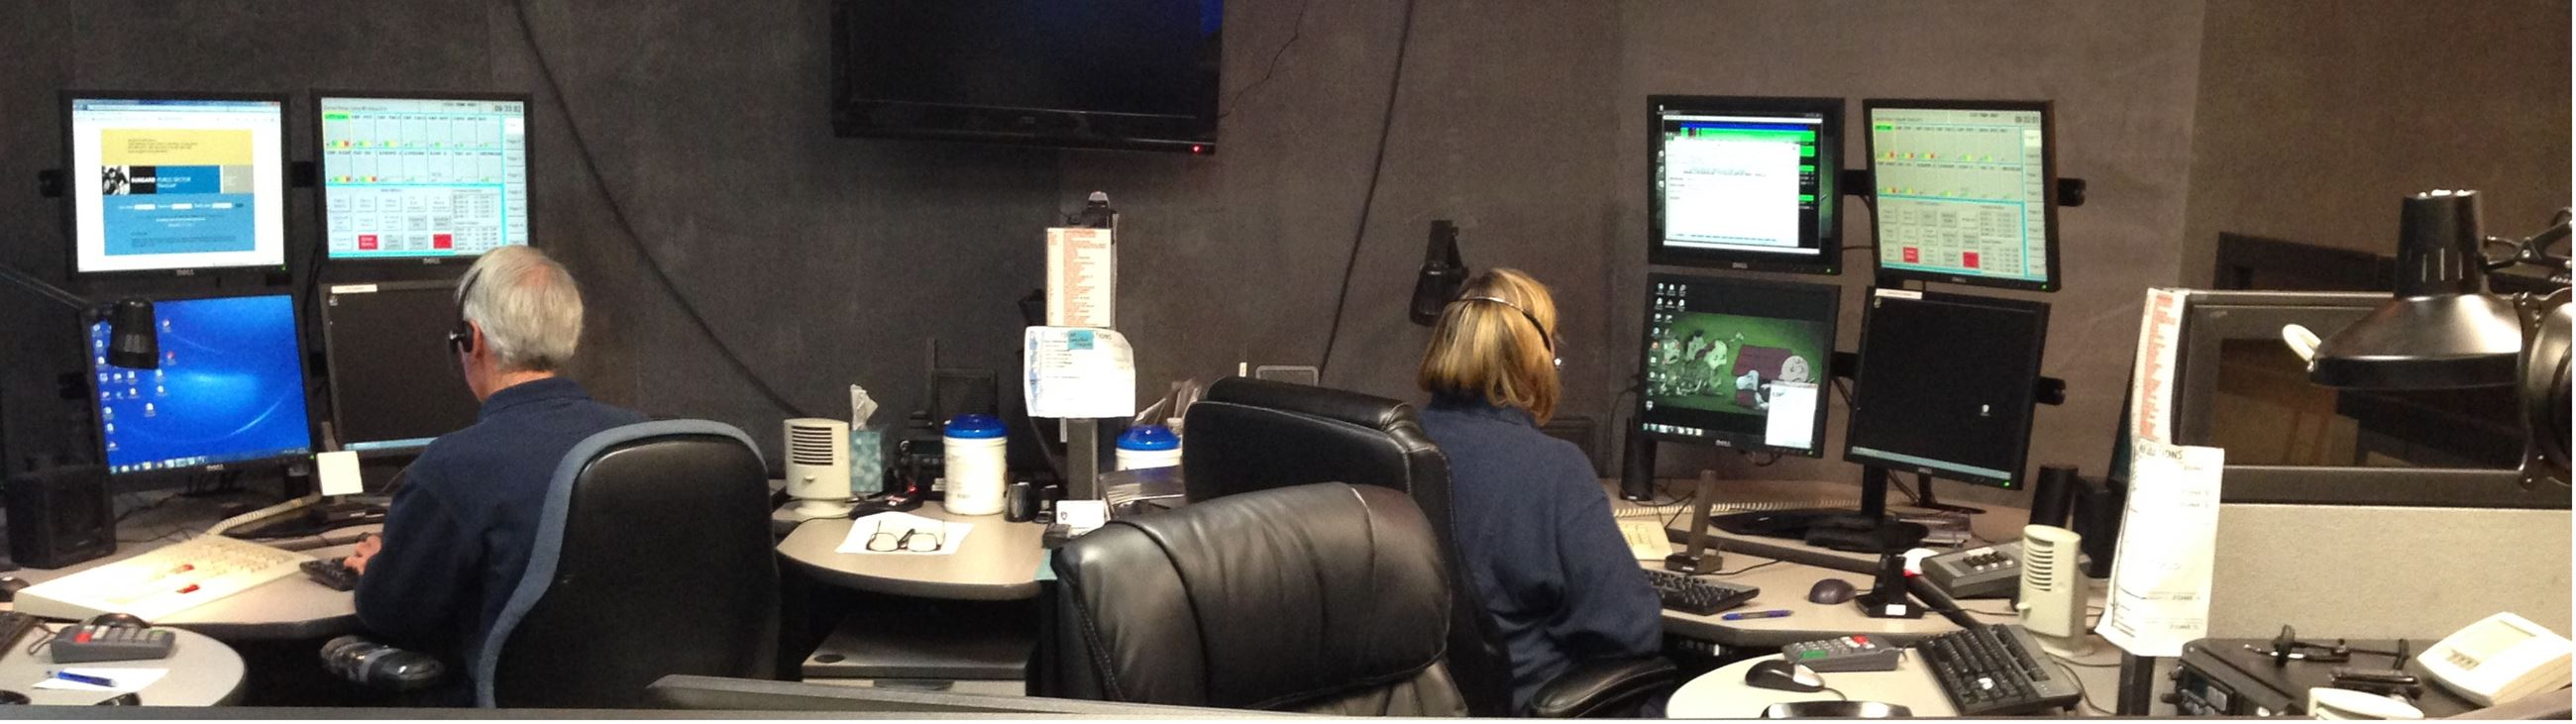 Communications Center - two dispatch officers at their desks taking calls